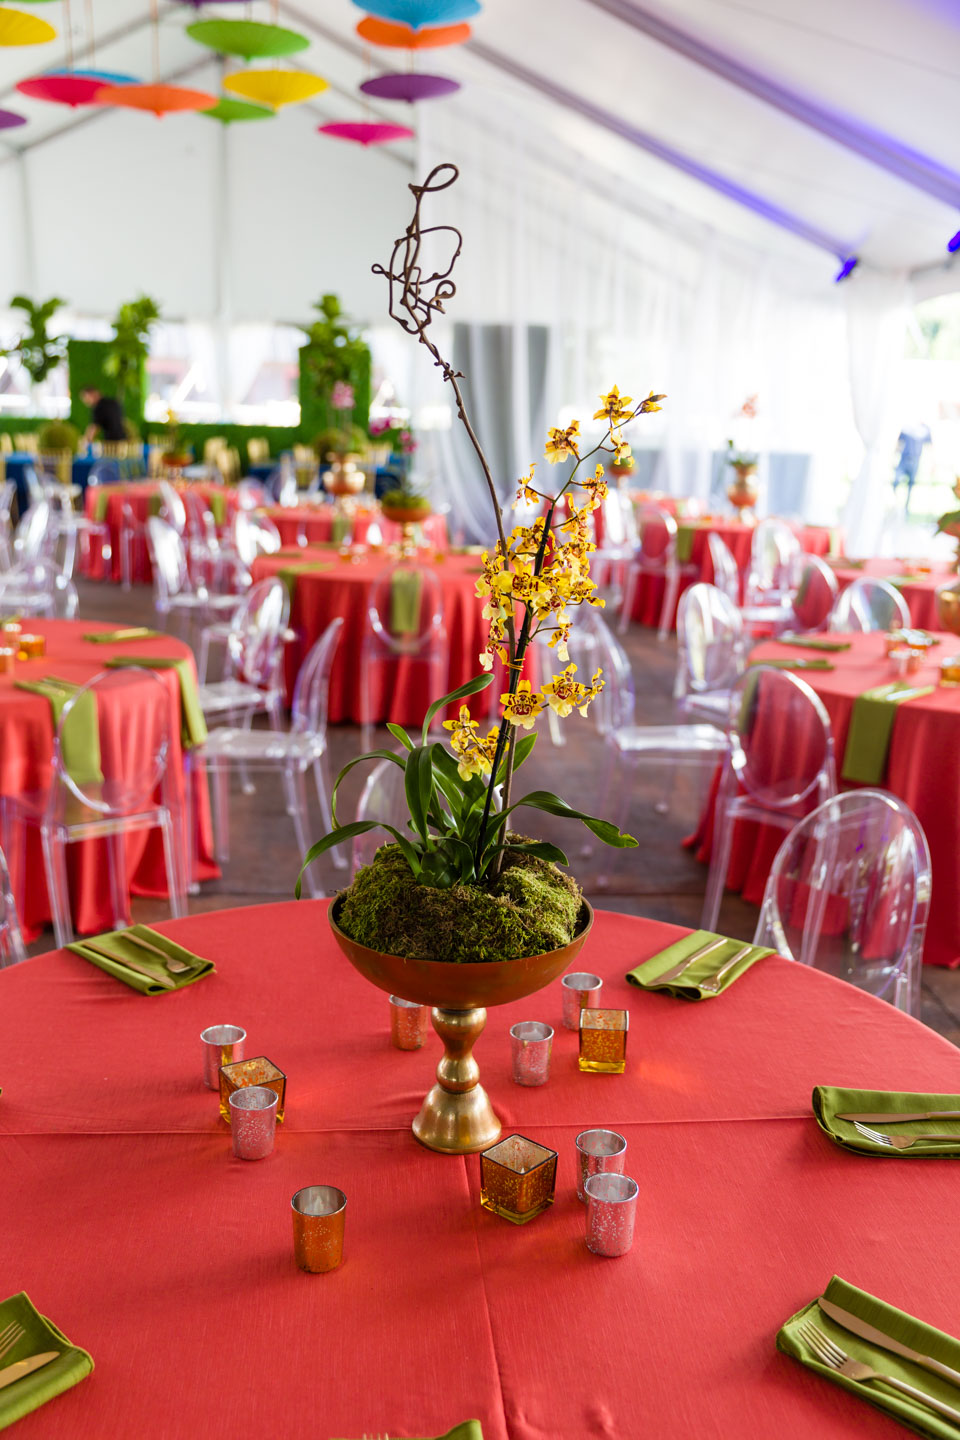 Orchids on each table